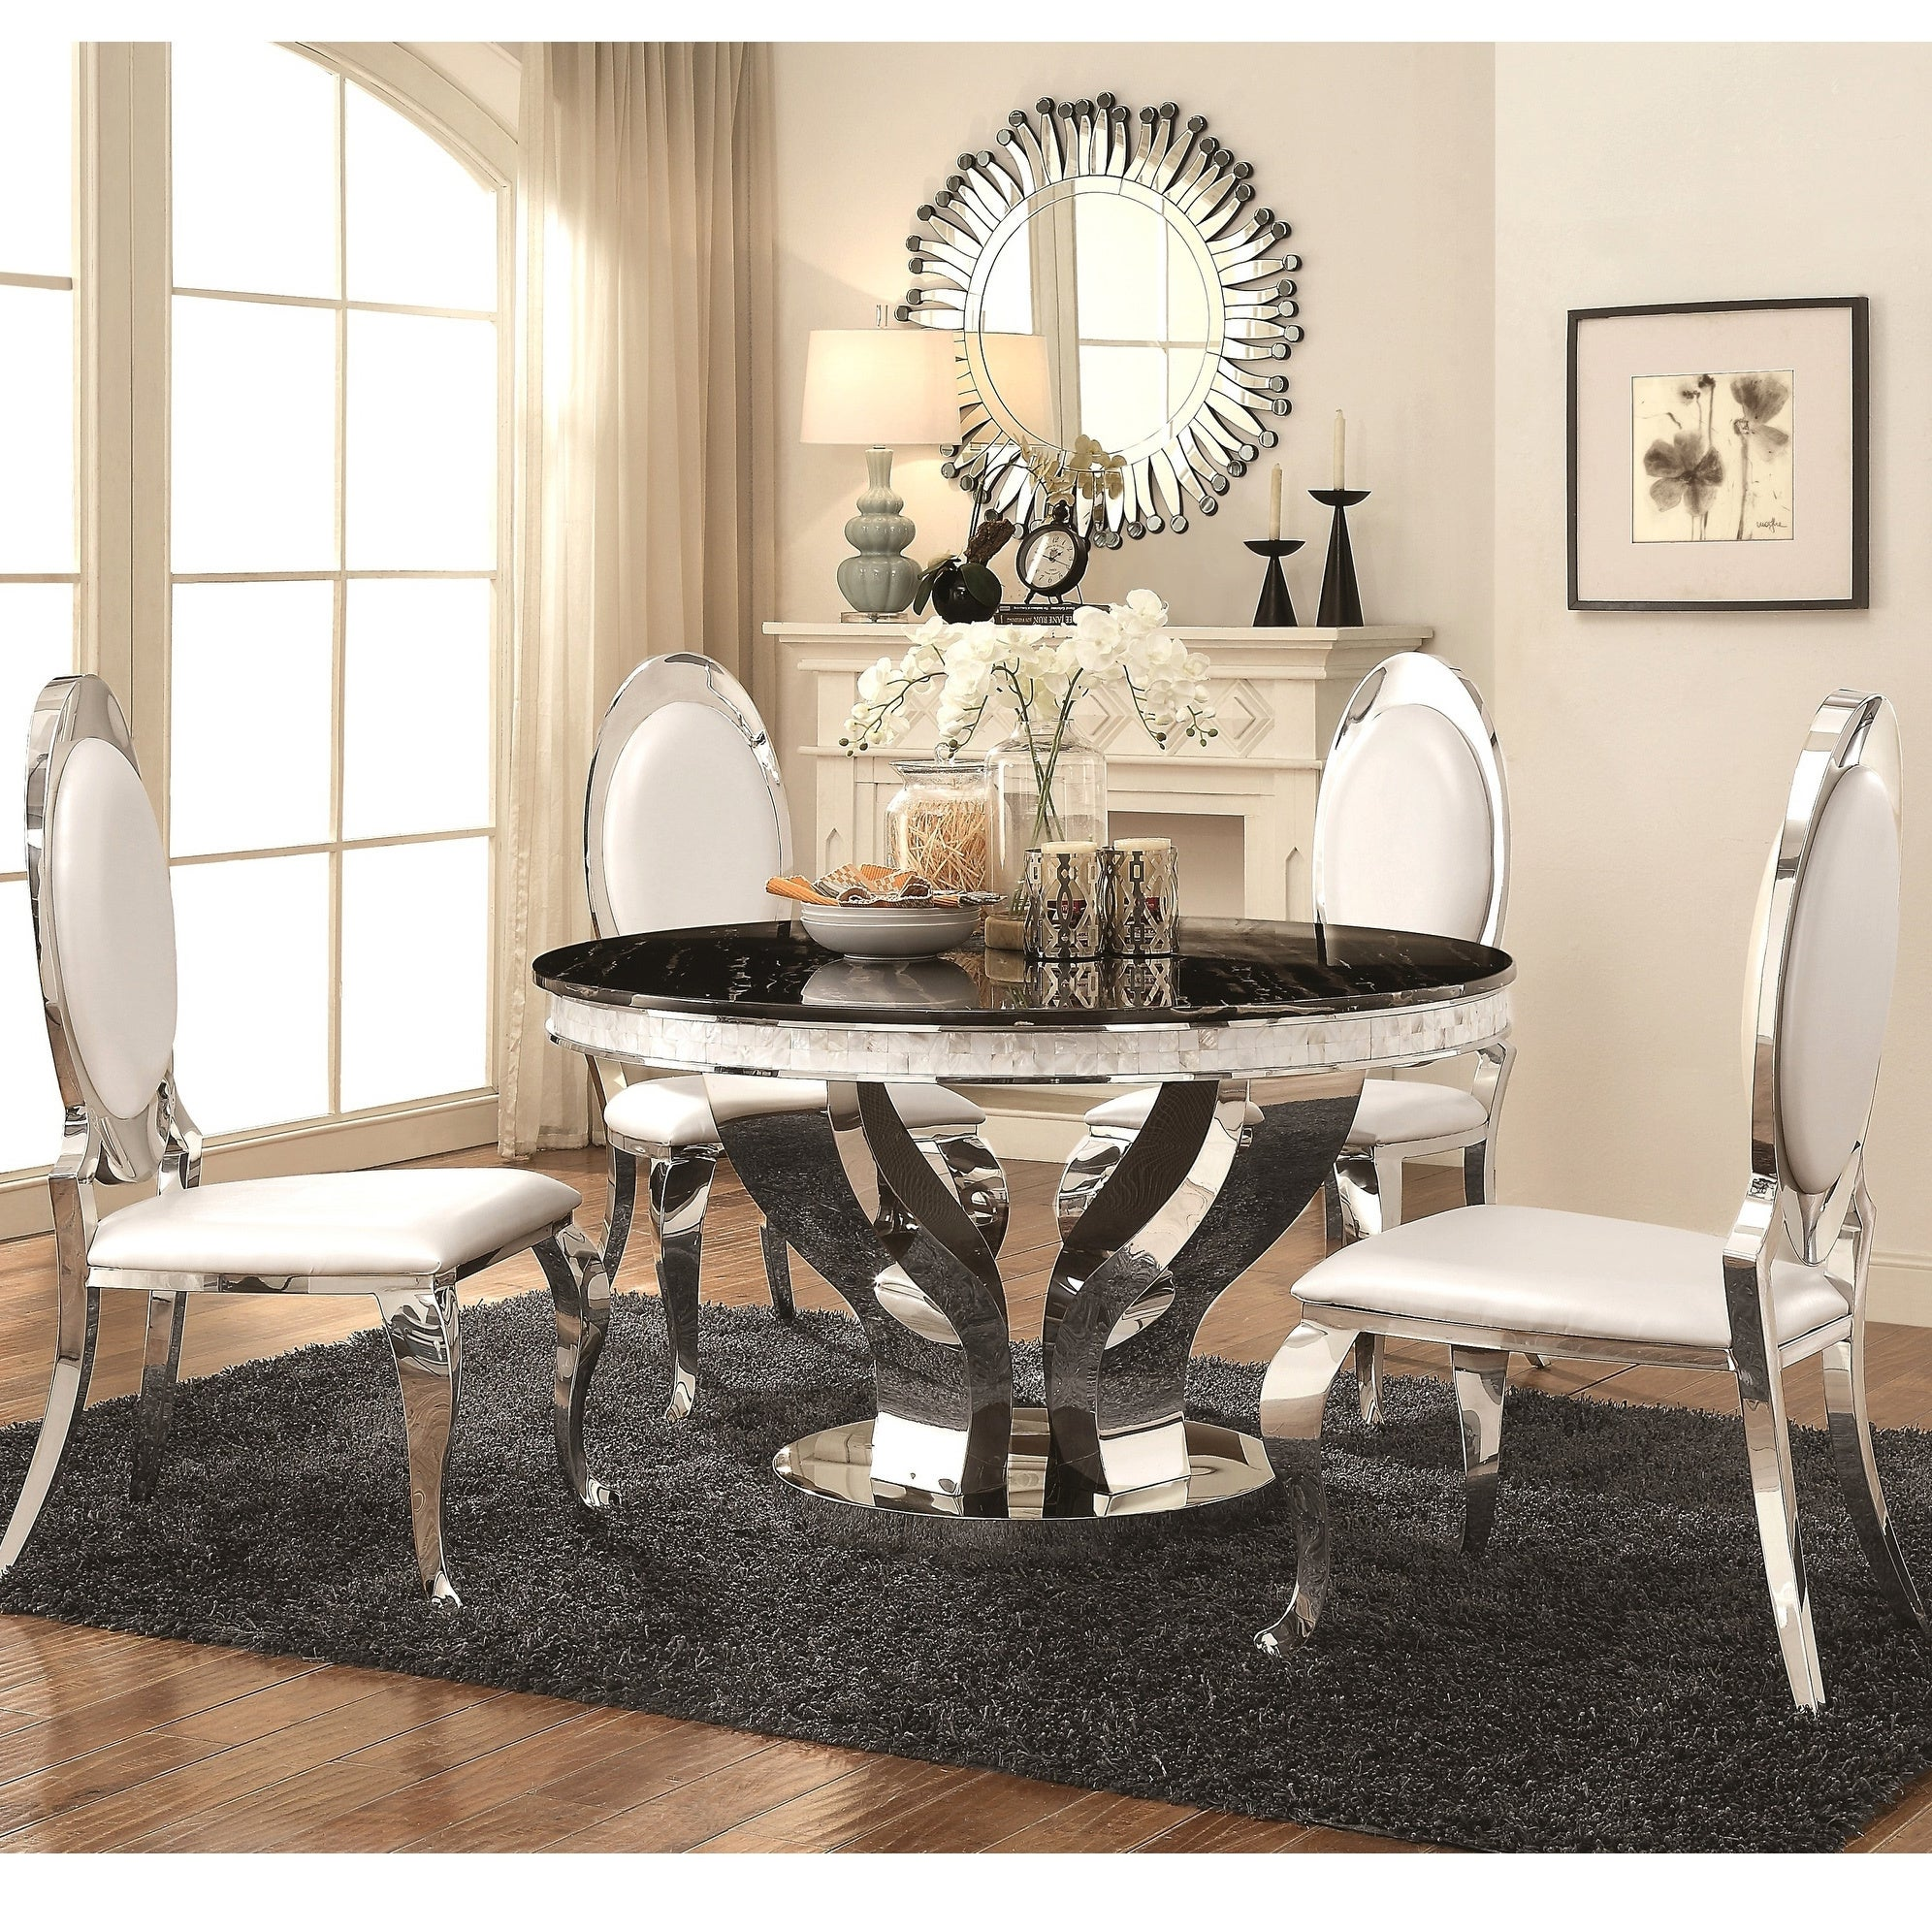 Luxurious Modern Design Round Stainless Steel Dining Set With Marble Table Top Overstock 23449862